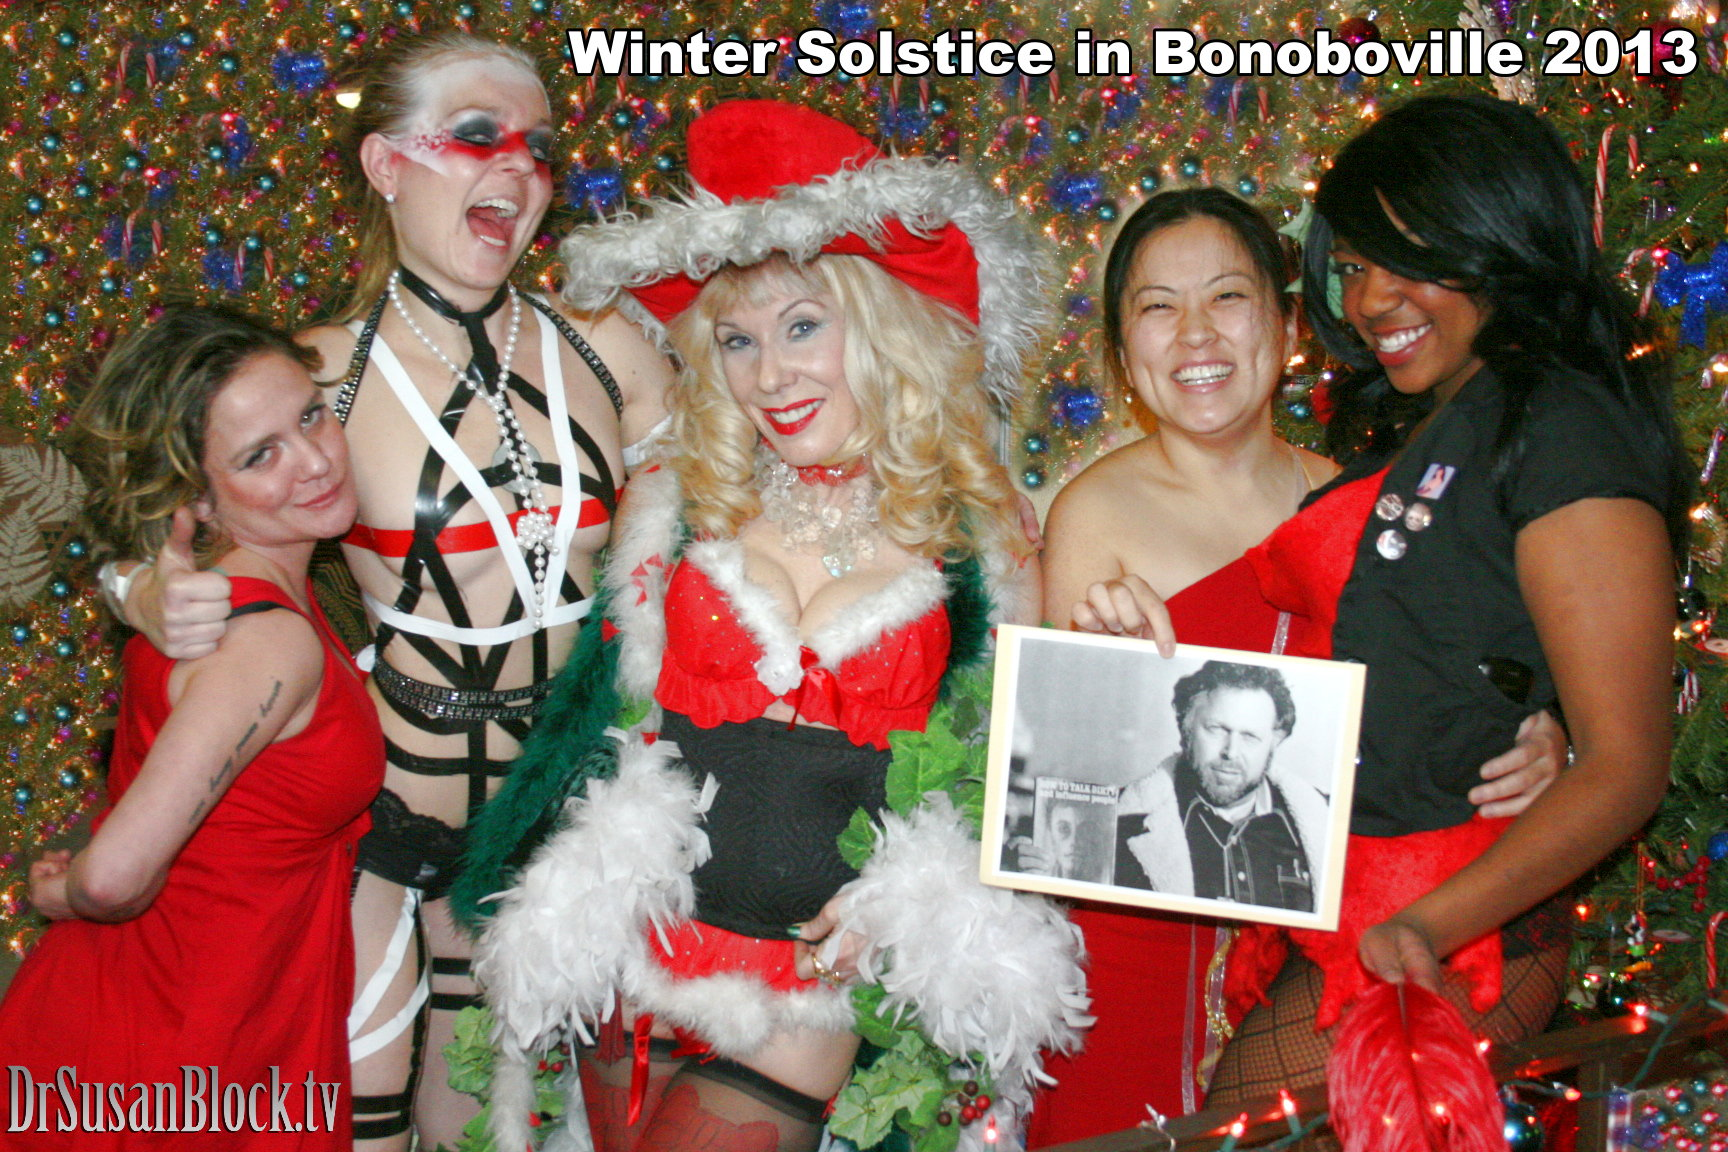 WiNTER SOLSTiCE in BONOBOVILLE: Poledancing Angel, Baby Jesus Butt Plug, Youtube Victory & RIP AL GOLDSTEIN